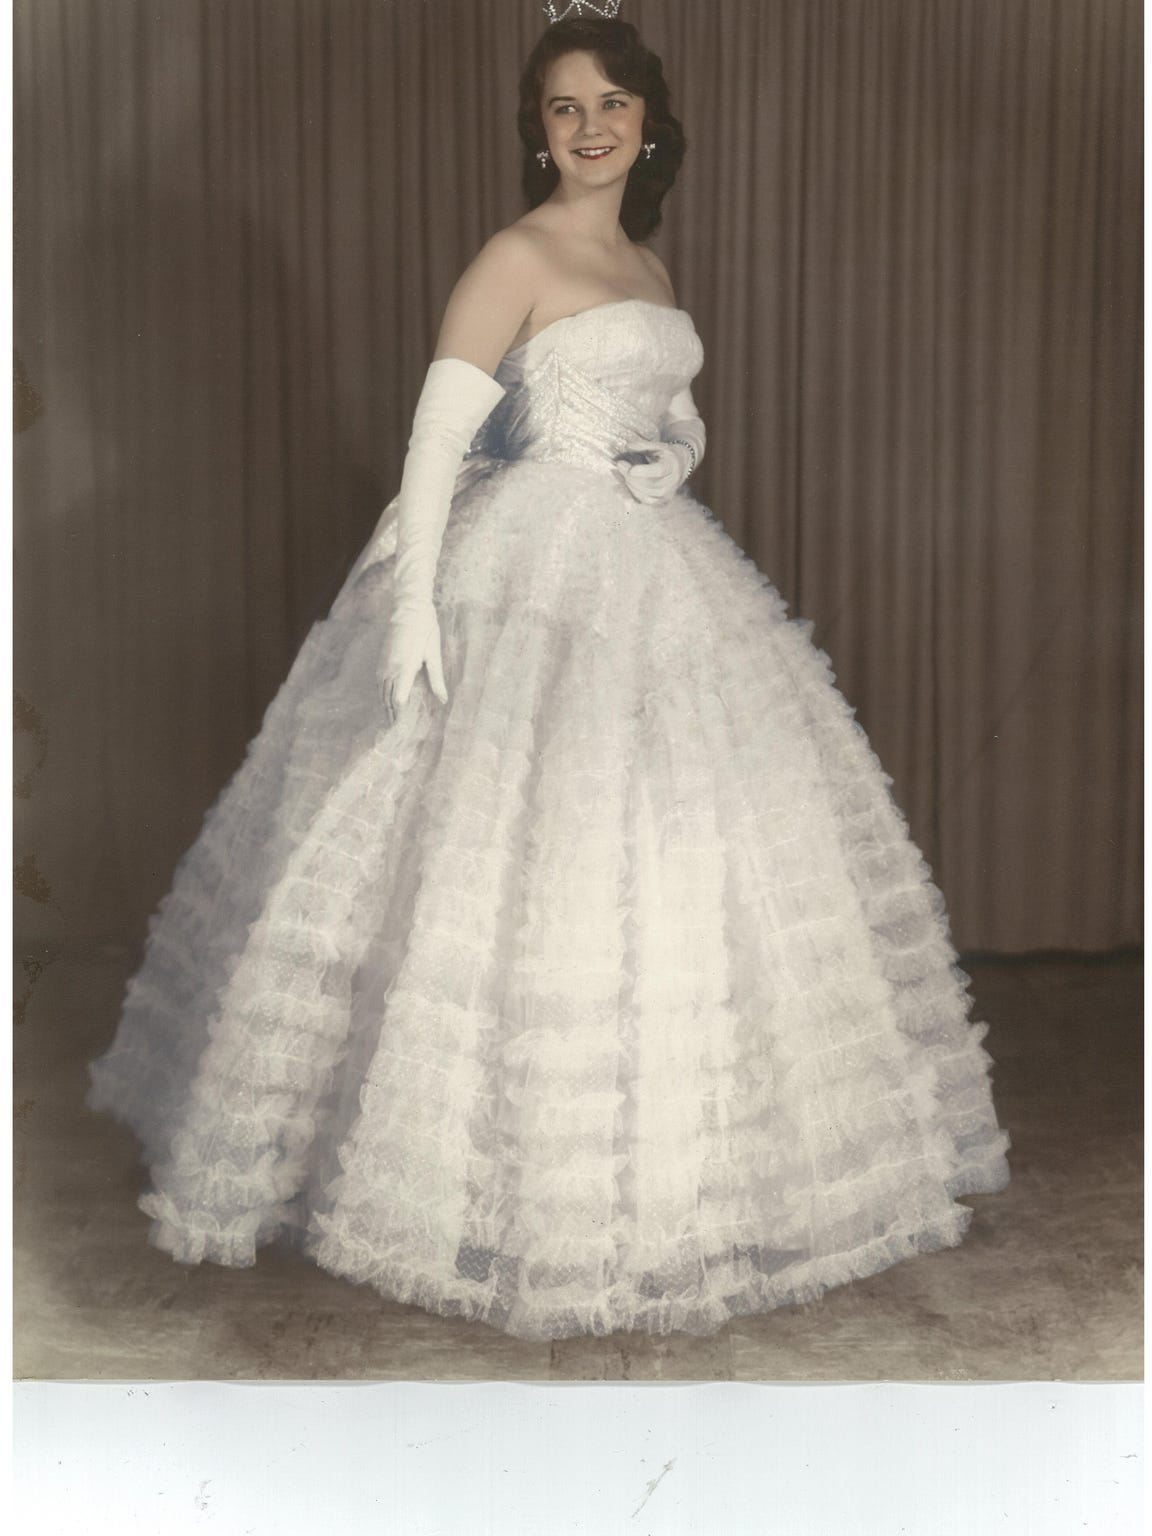 1957 photo of Mary Horton, Homecoming Queen at Eunice